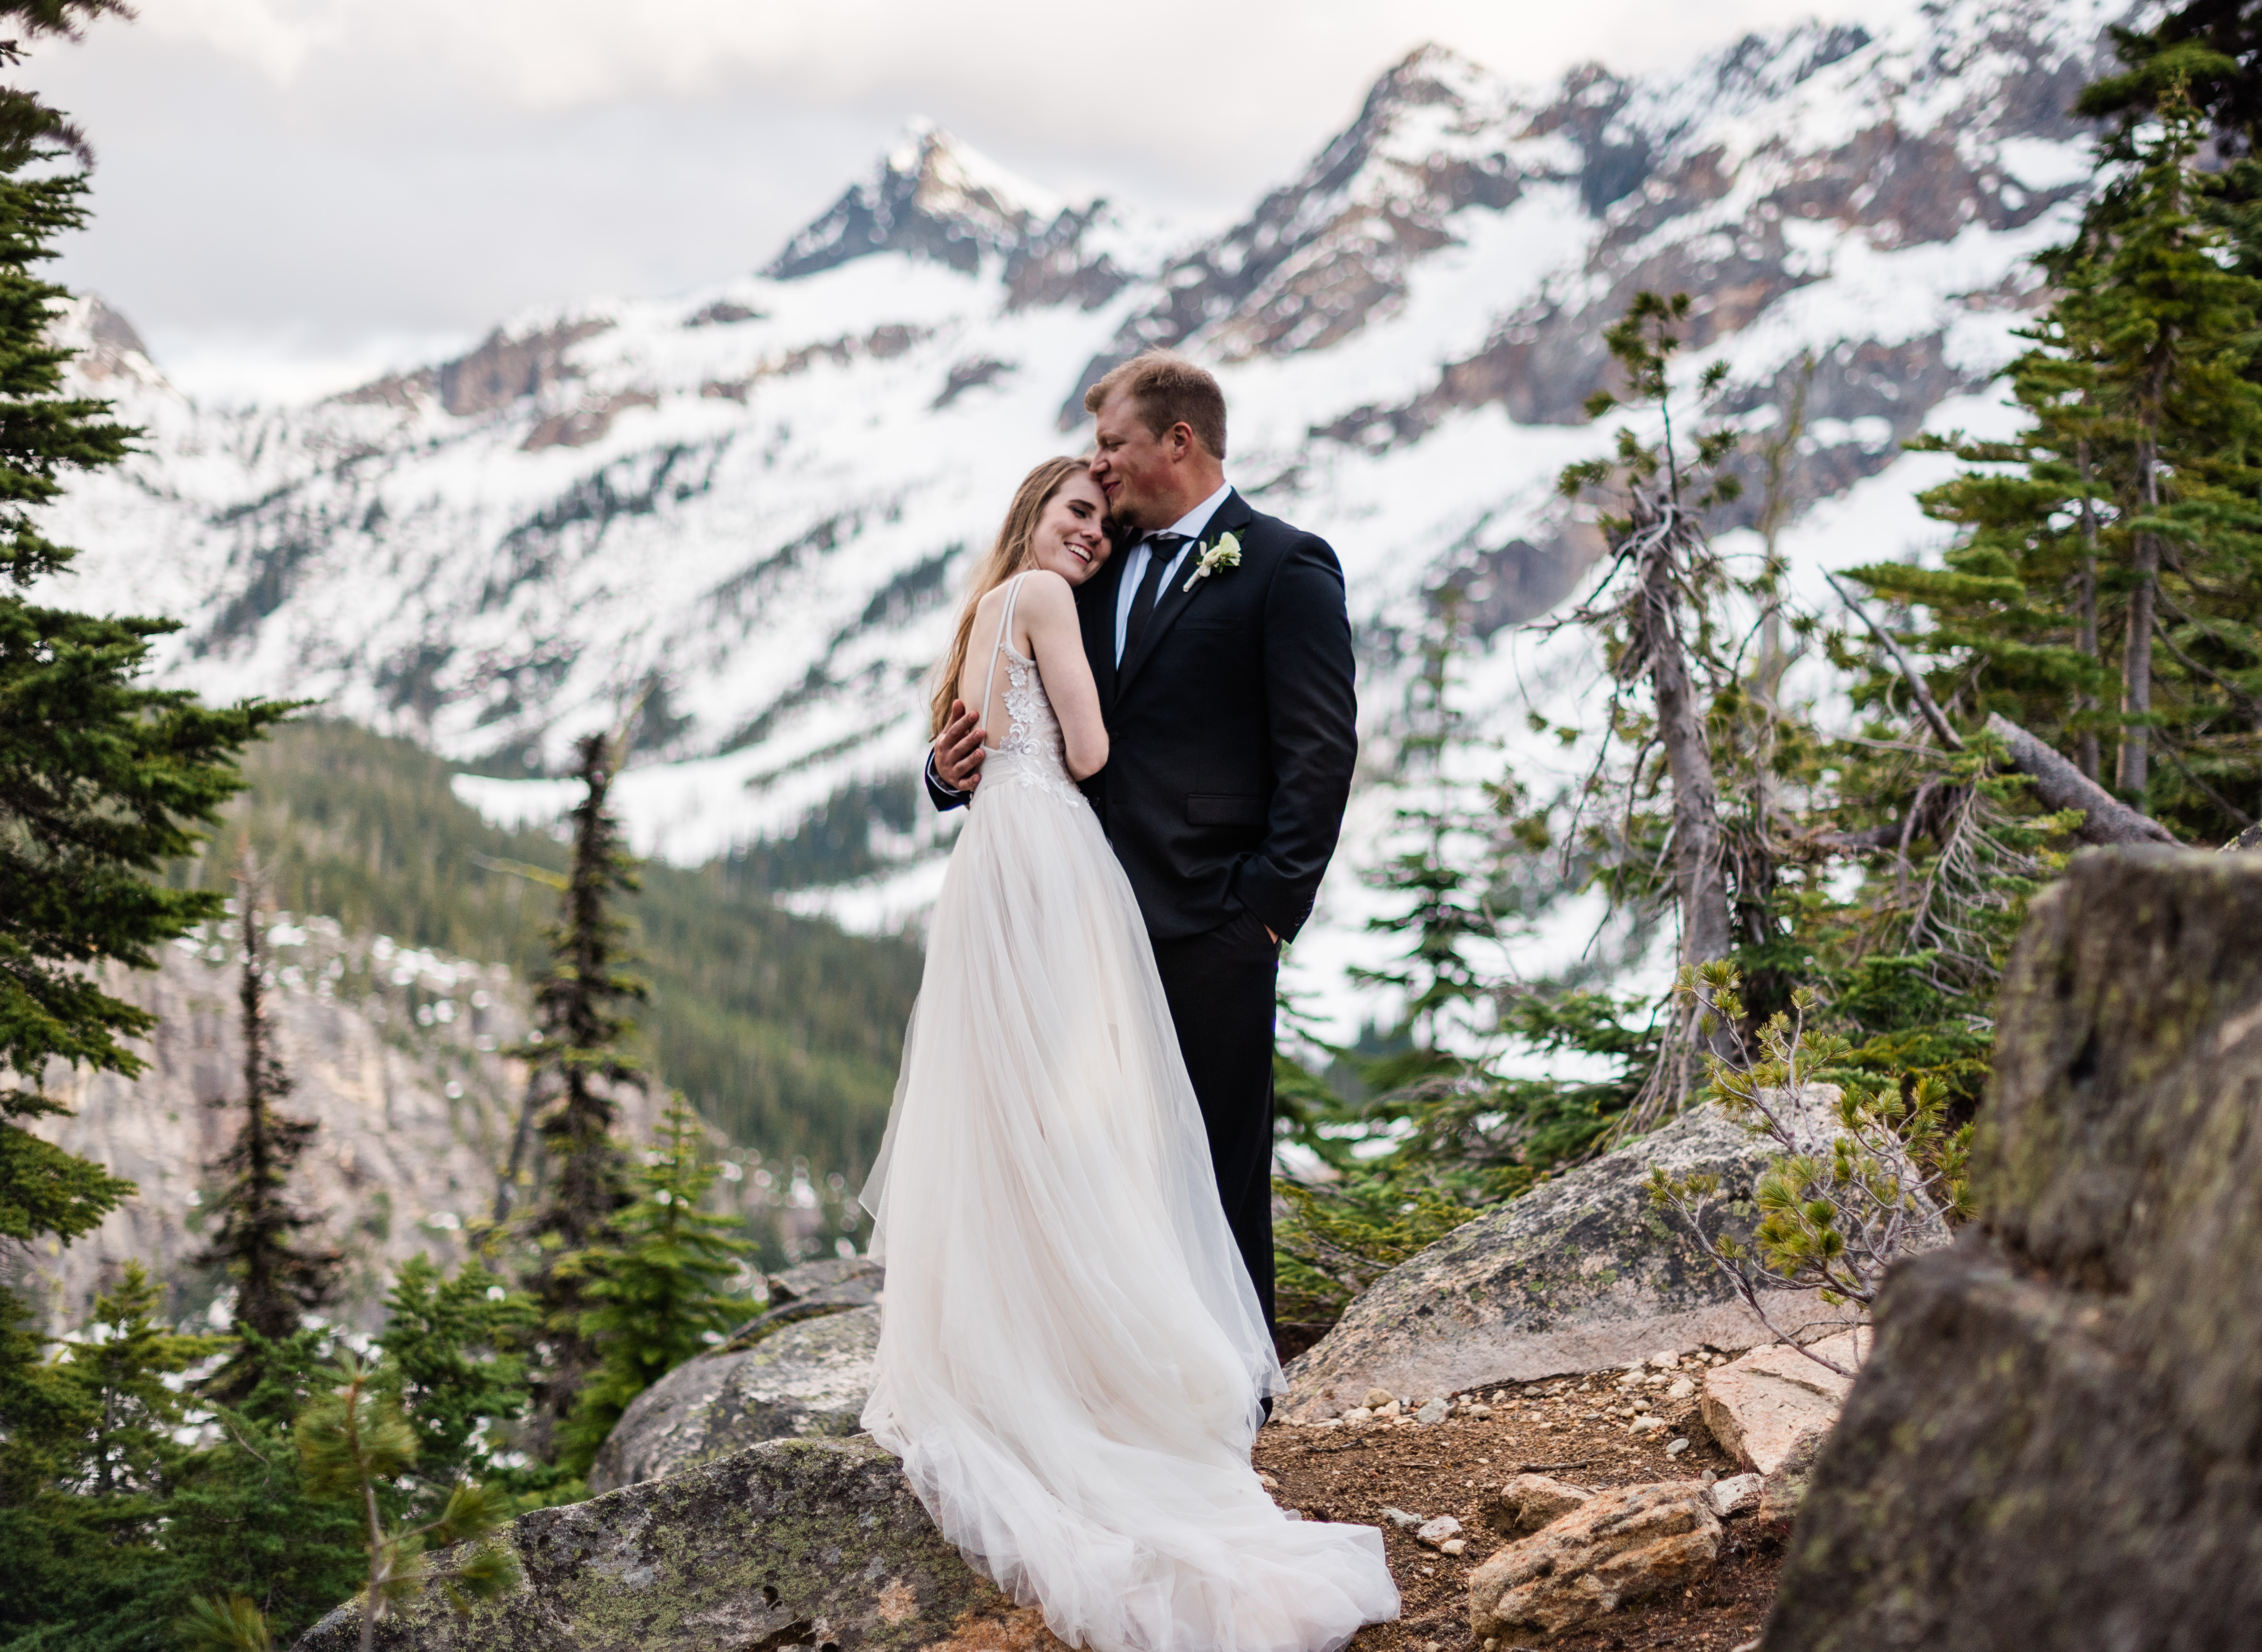 North Cascades elopement at Washington Pass Overlook. Image by Forthright Photo.